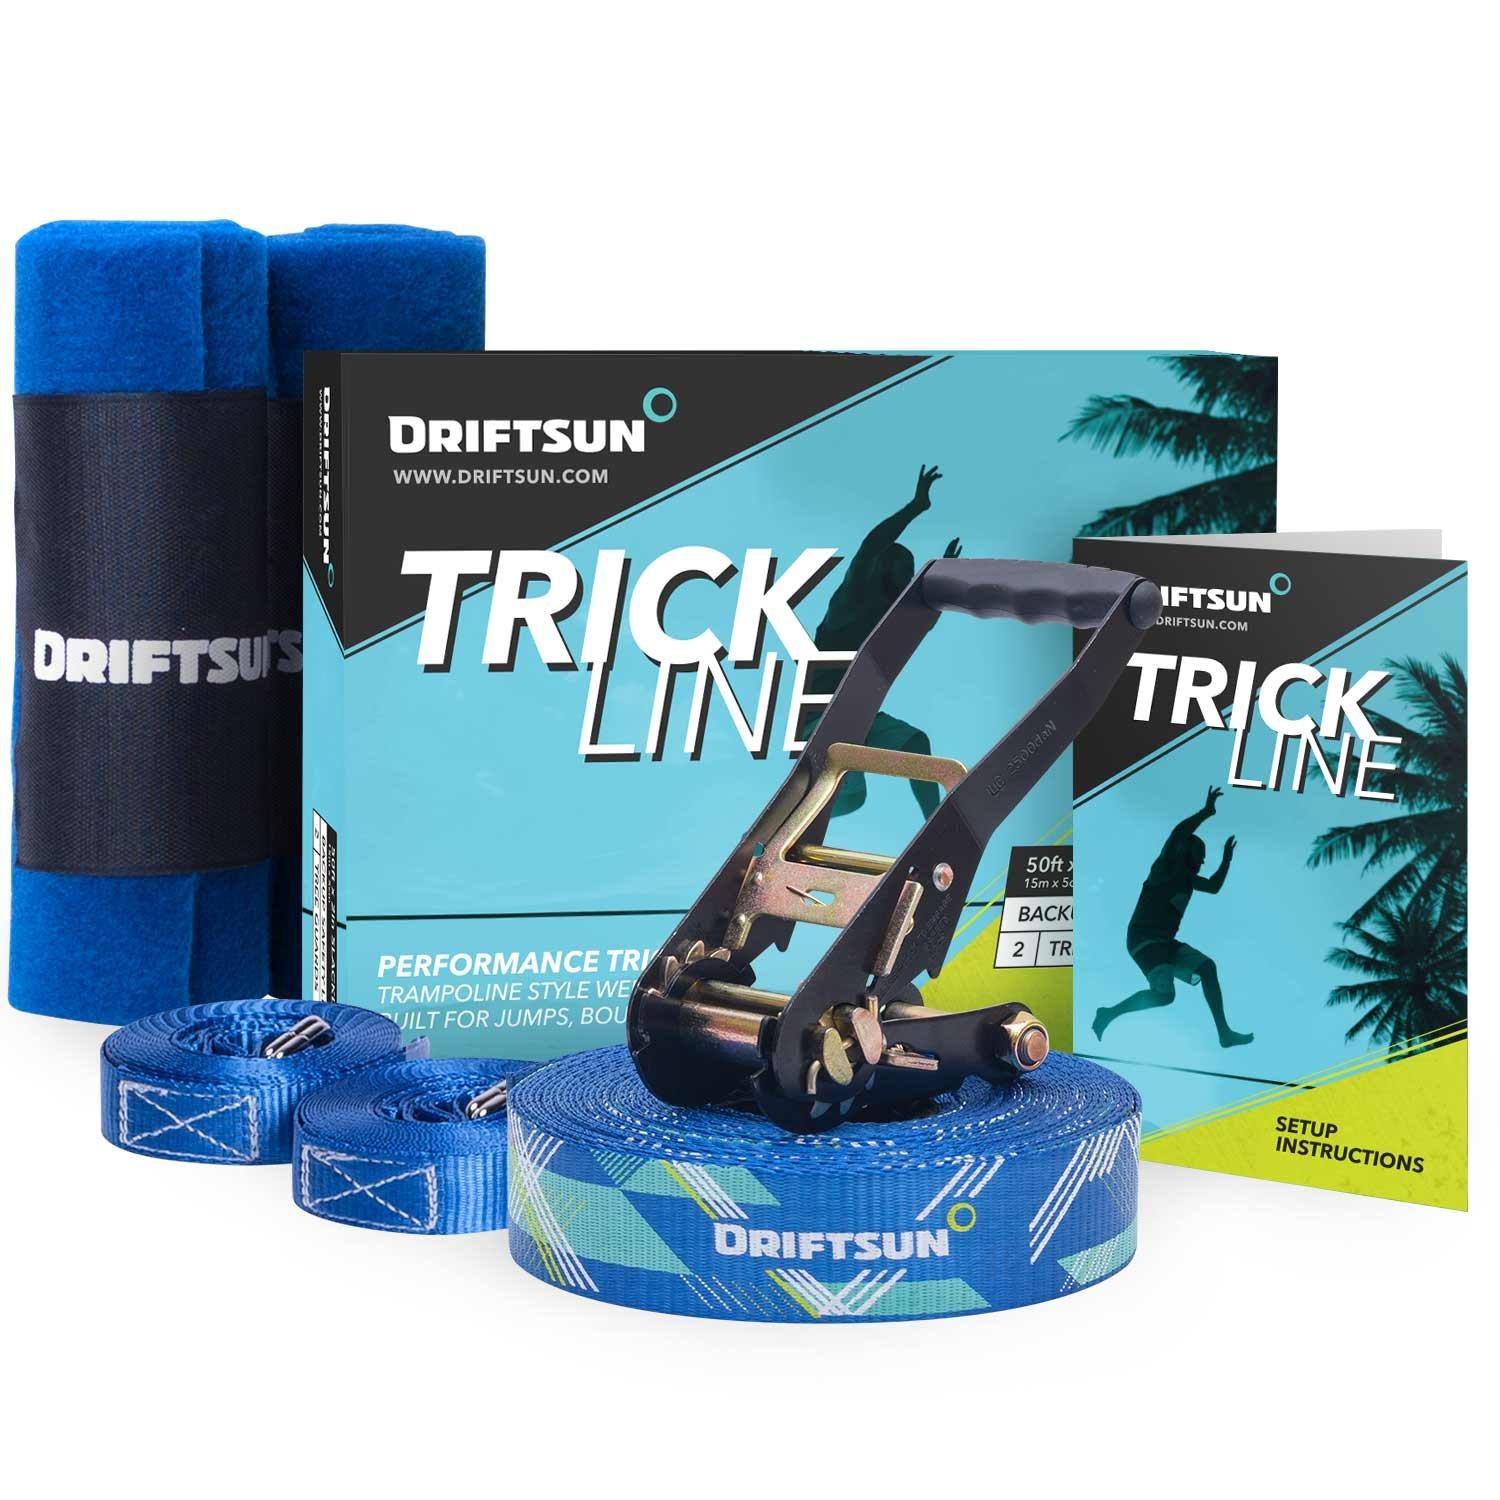 Driftsun Slack-Line Trick-Line Complete Kit with Back-Up Line and Tree Guard Protectors, Easy to Set-Up and Includes Carry Bag, 50-Foot by Driftsun